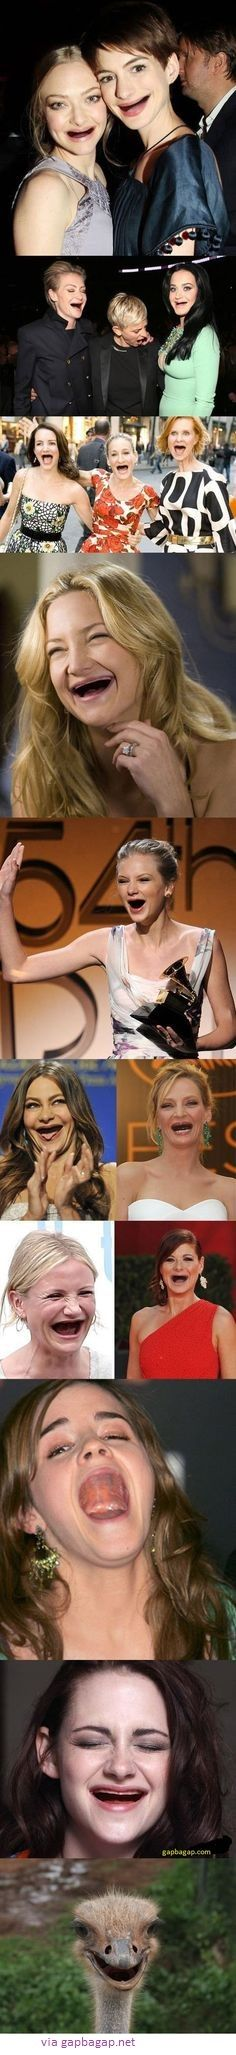 Funny Pictures Of Celebrities Without Teeth